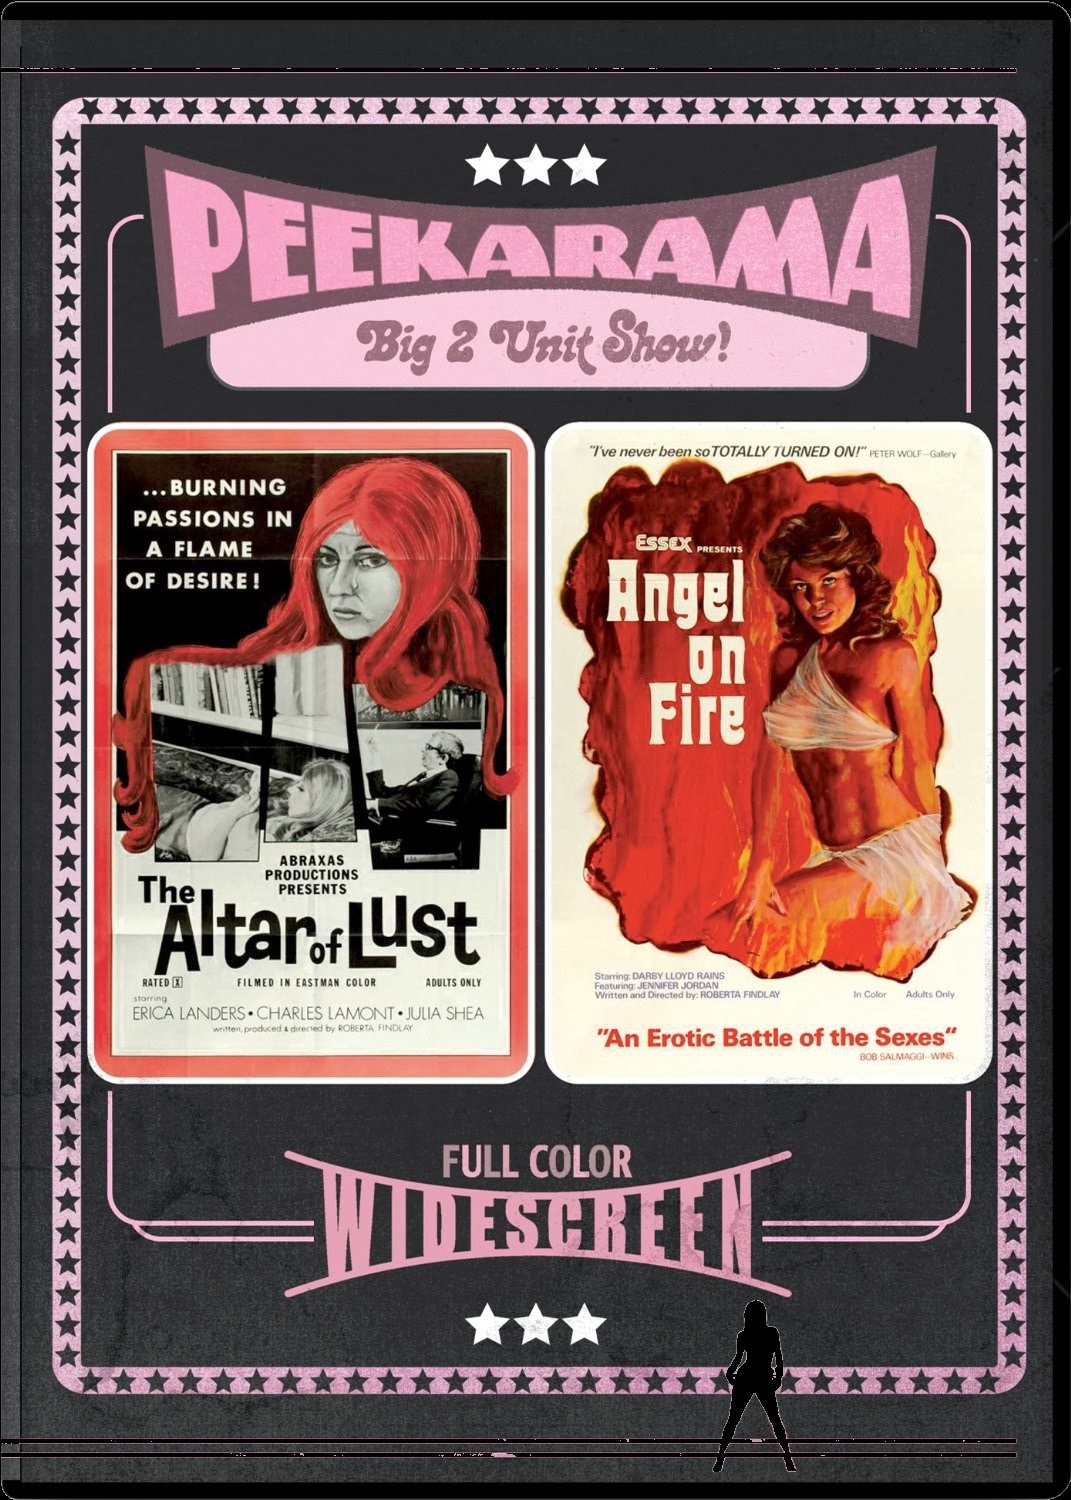 http://3.bp.blogspot.com/-8ZWIsO4Jfno/Ux5nV5ToivI/AAAAAAAAECo/HjaqBwFbzMw/s1600/cover_altar_of_lust_angel_on_fire_vinegar_syndrome_dvd.jpg